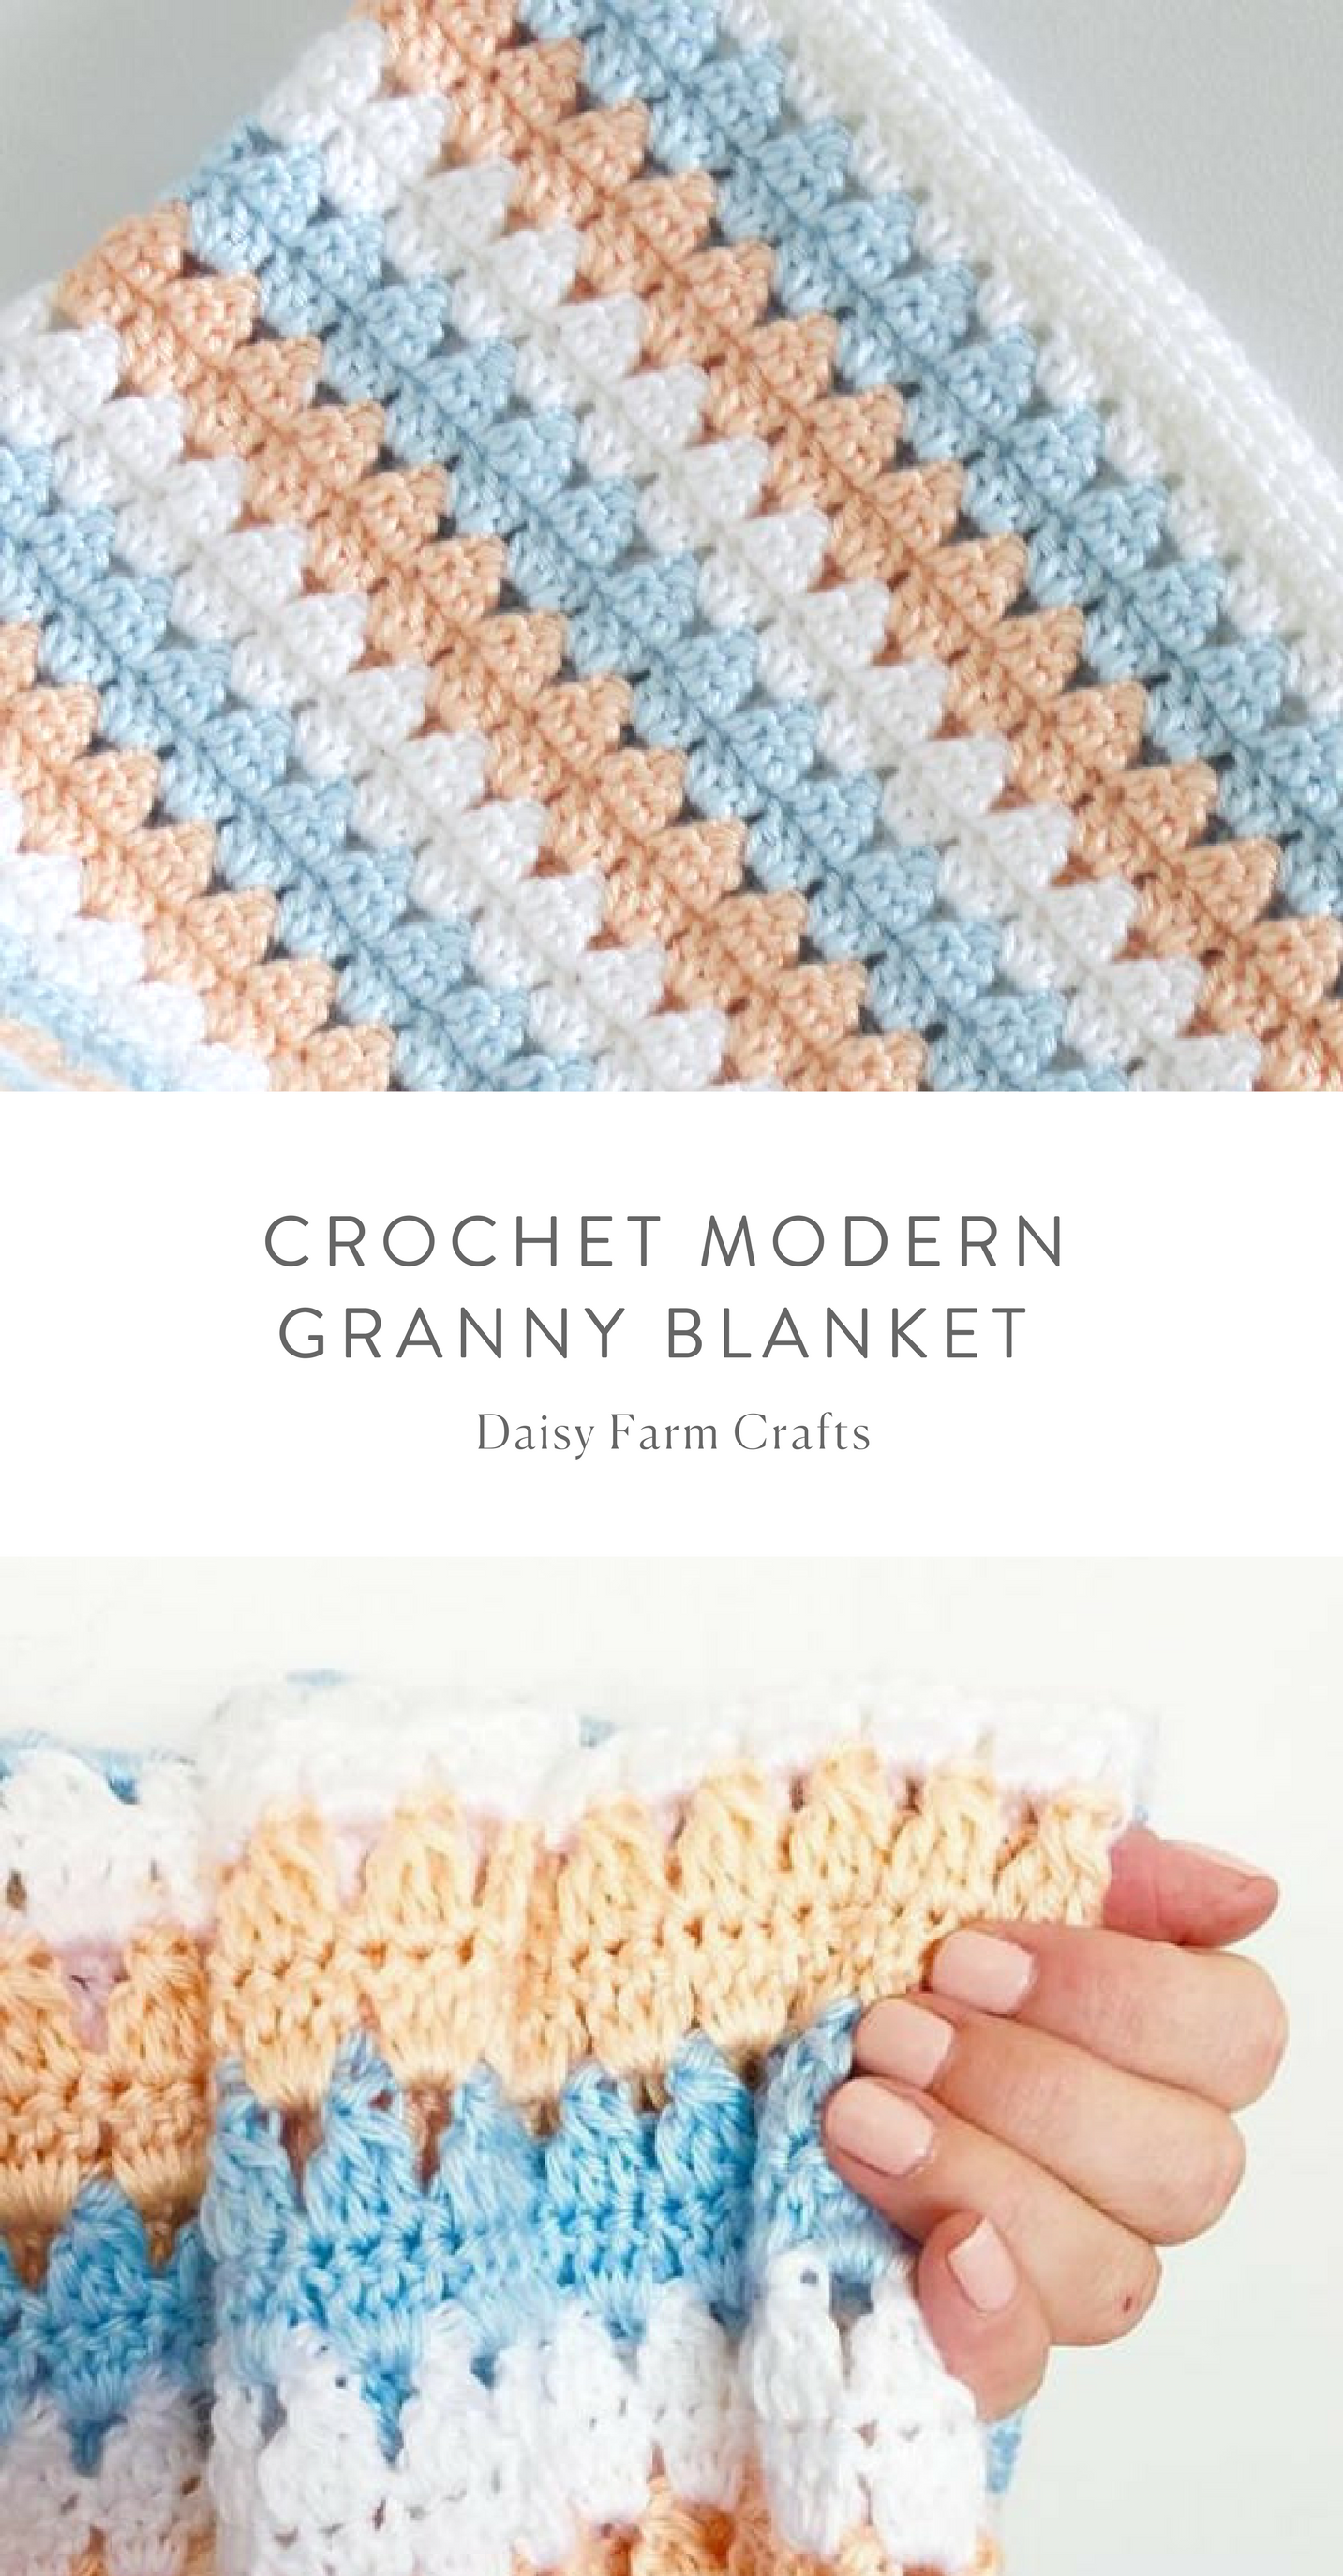 Free Pattern - Crochet Modern Granny Blanket in Peach and Blue | DIY ...